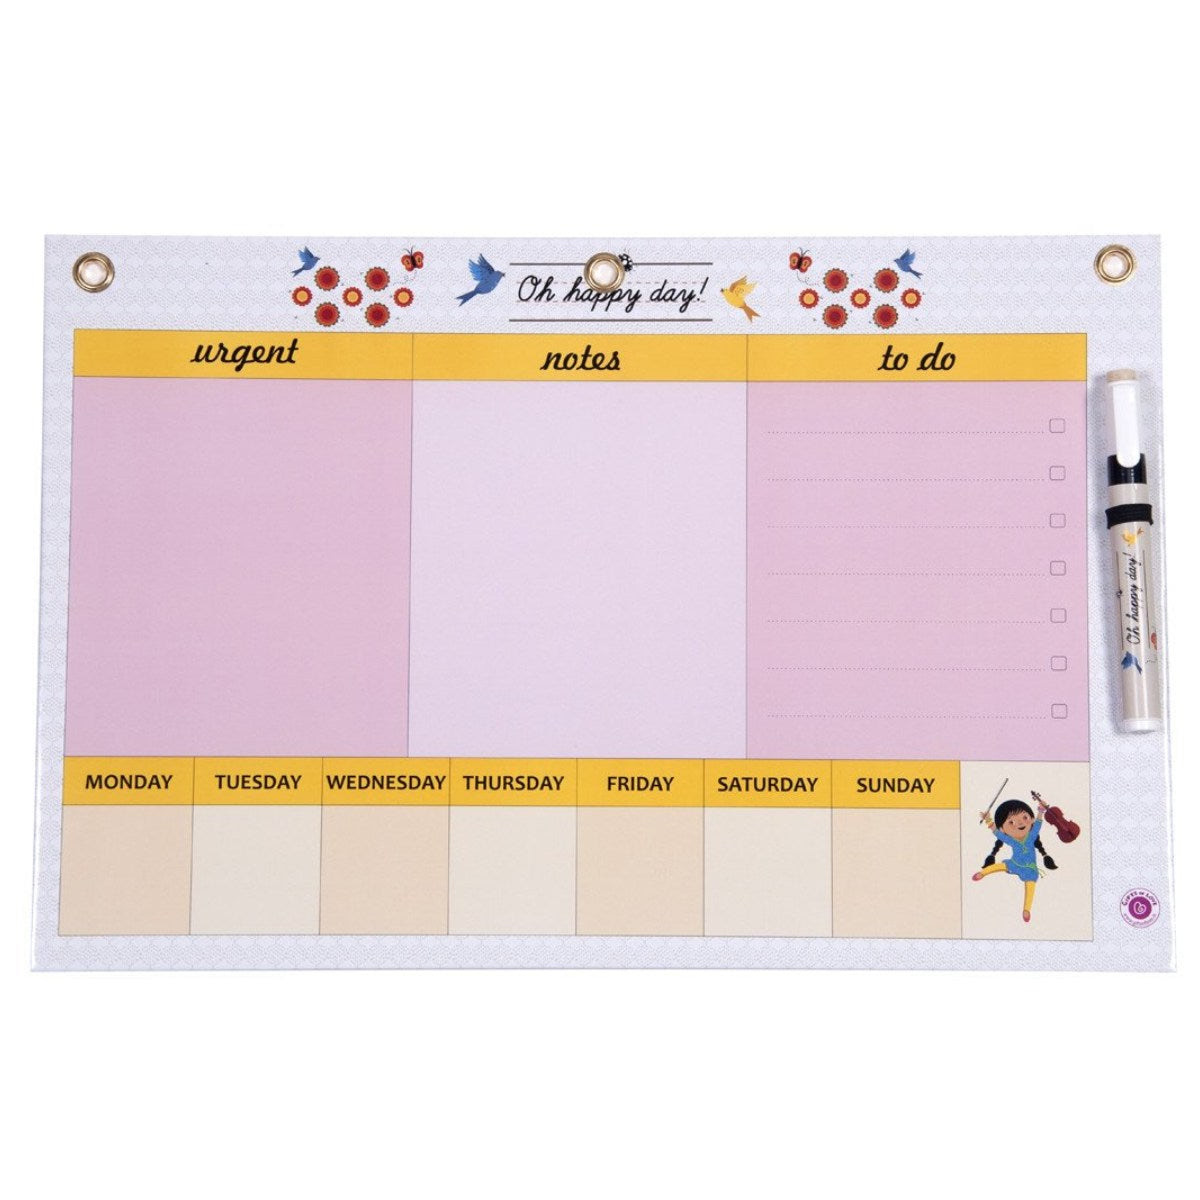 Dry Erase Board Big - Oh Happy Day Handy Planner | Gifts of Love